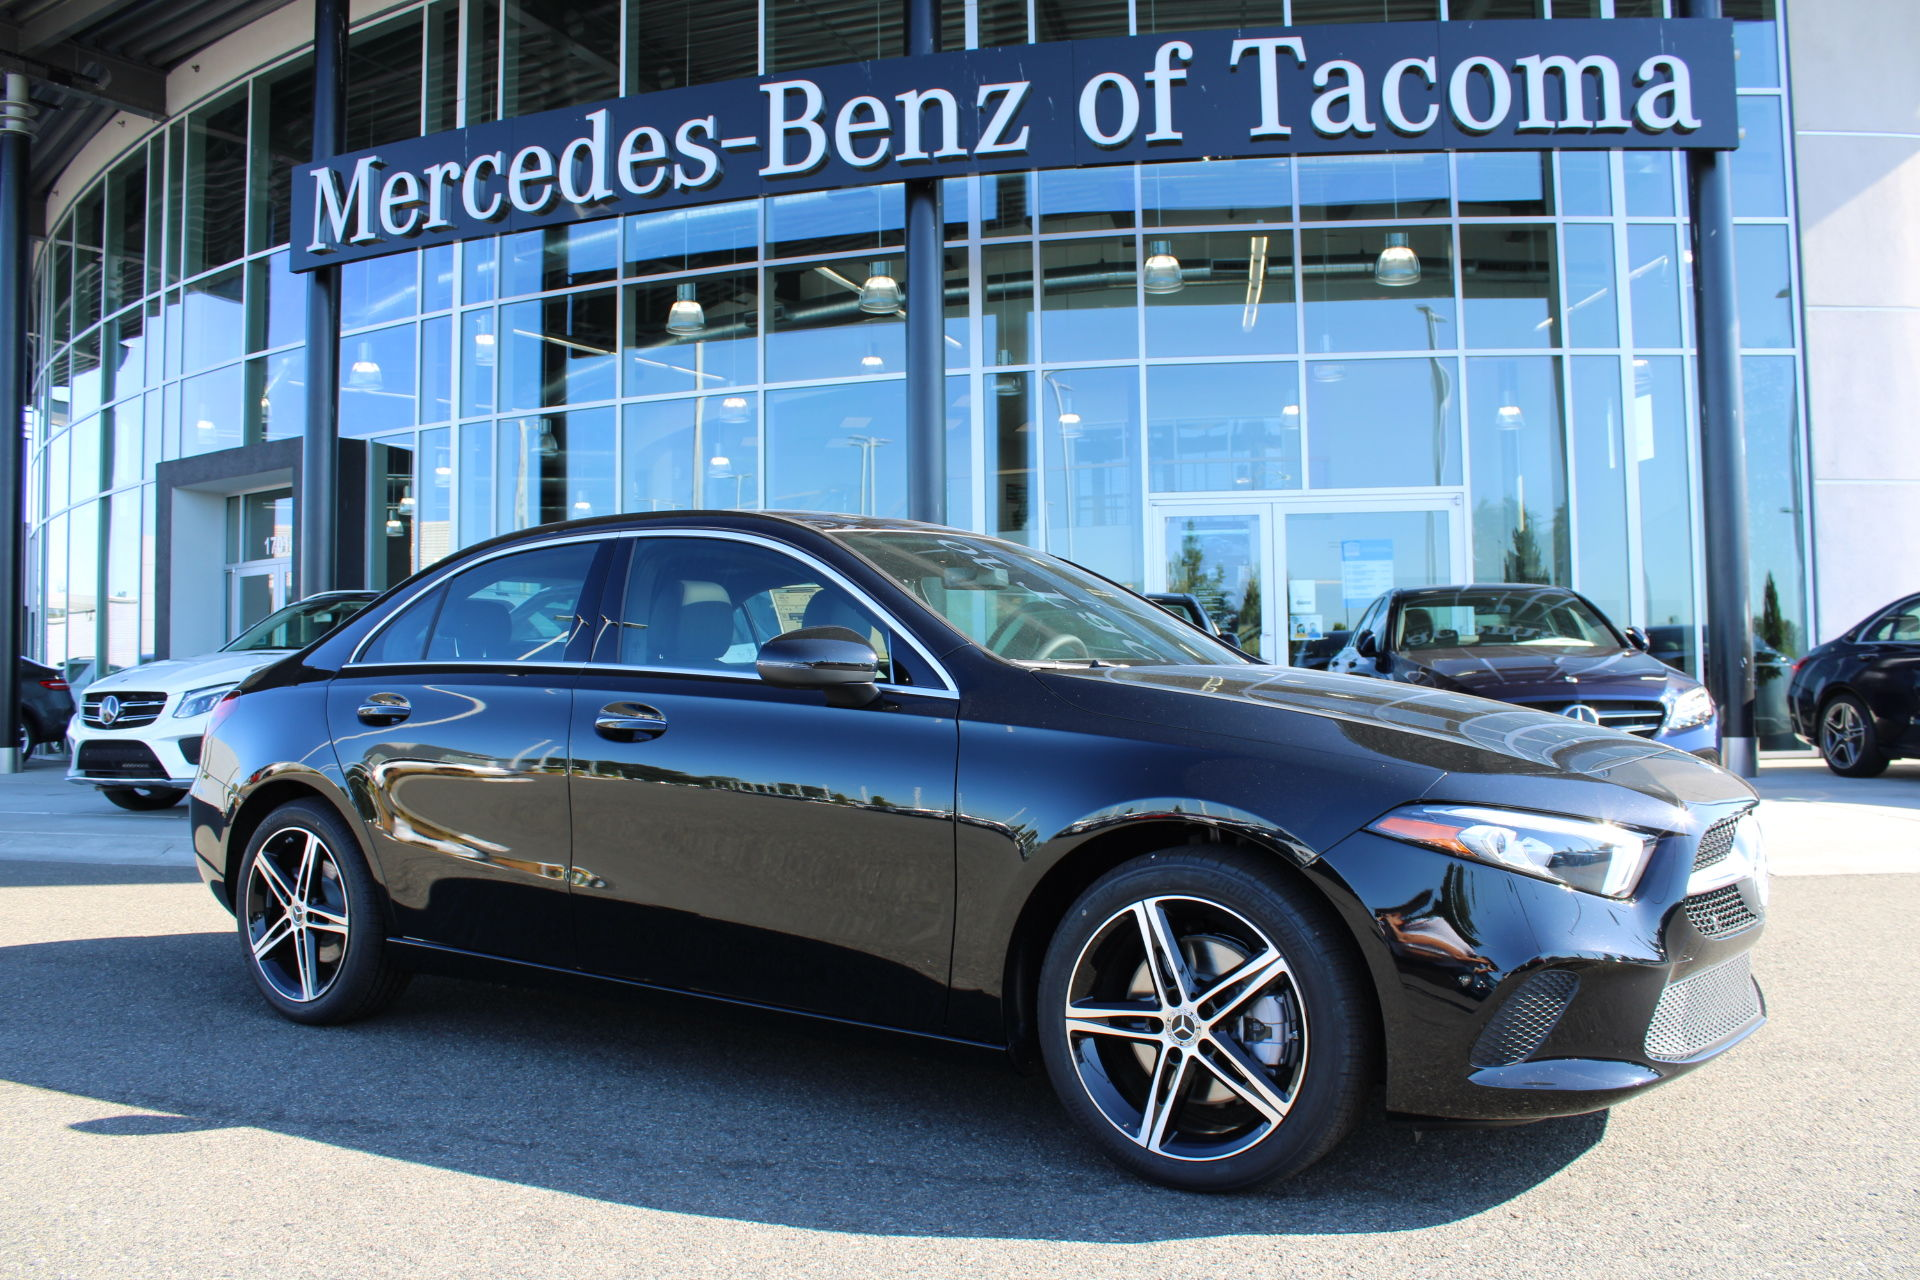 new mercedes benz vehicles for sale in fife wa mercedes benz of tacoma fife wa mercedes benz of tacoma